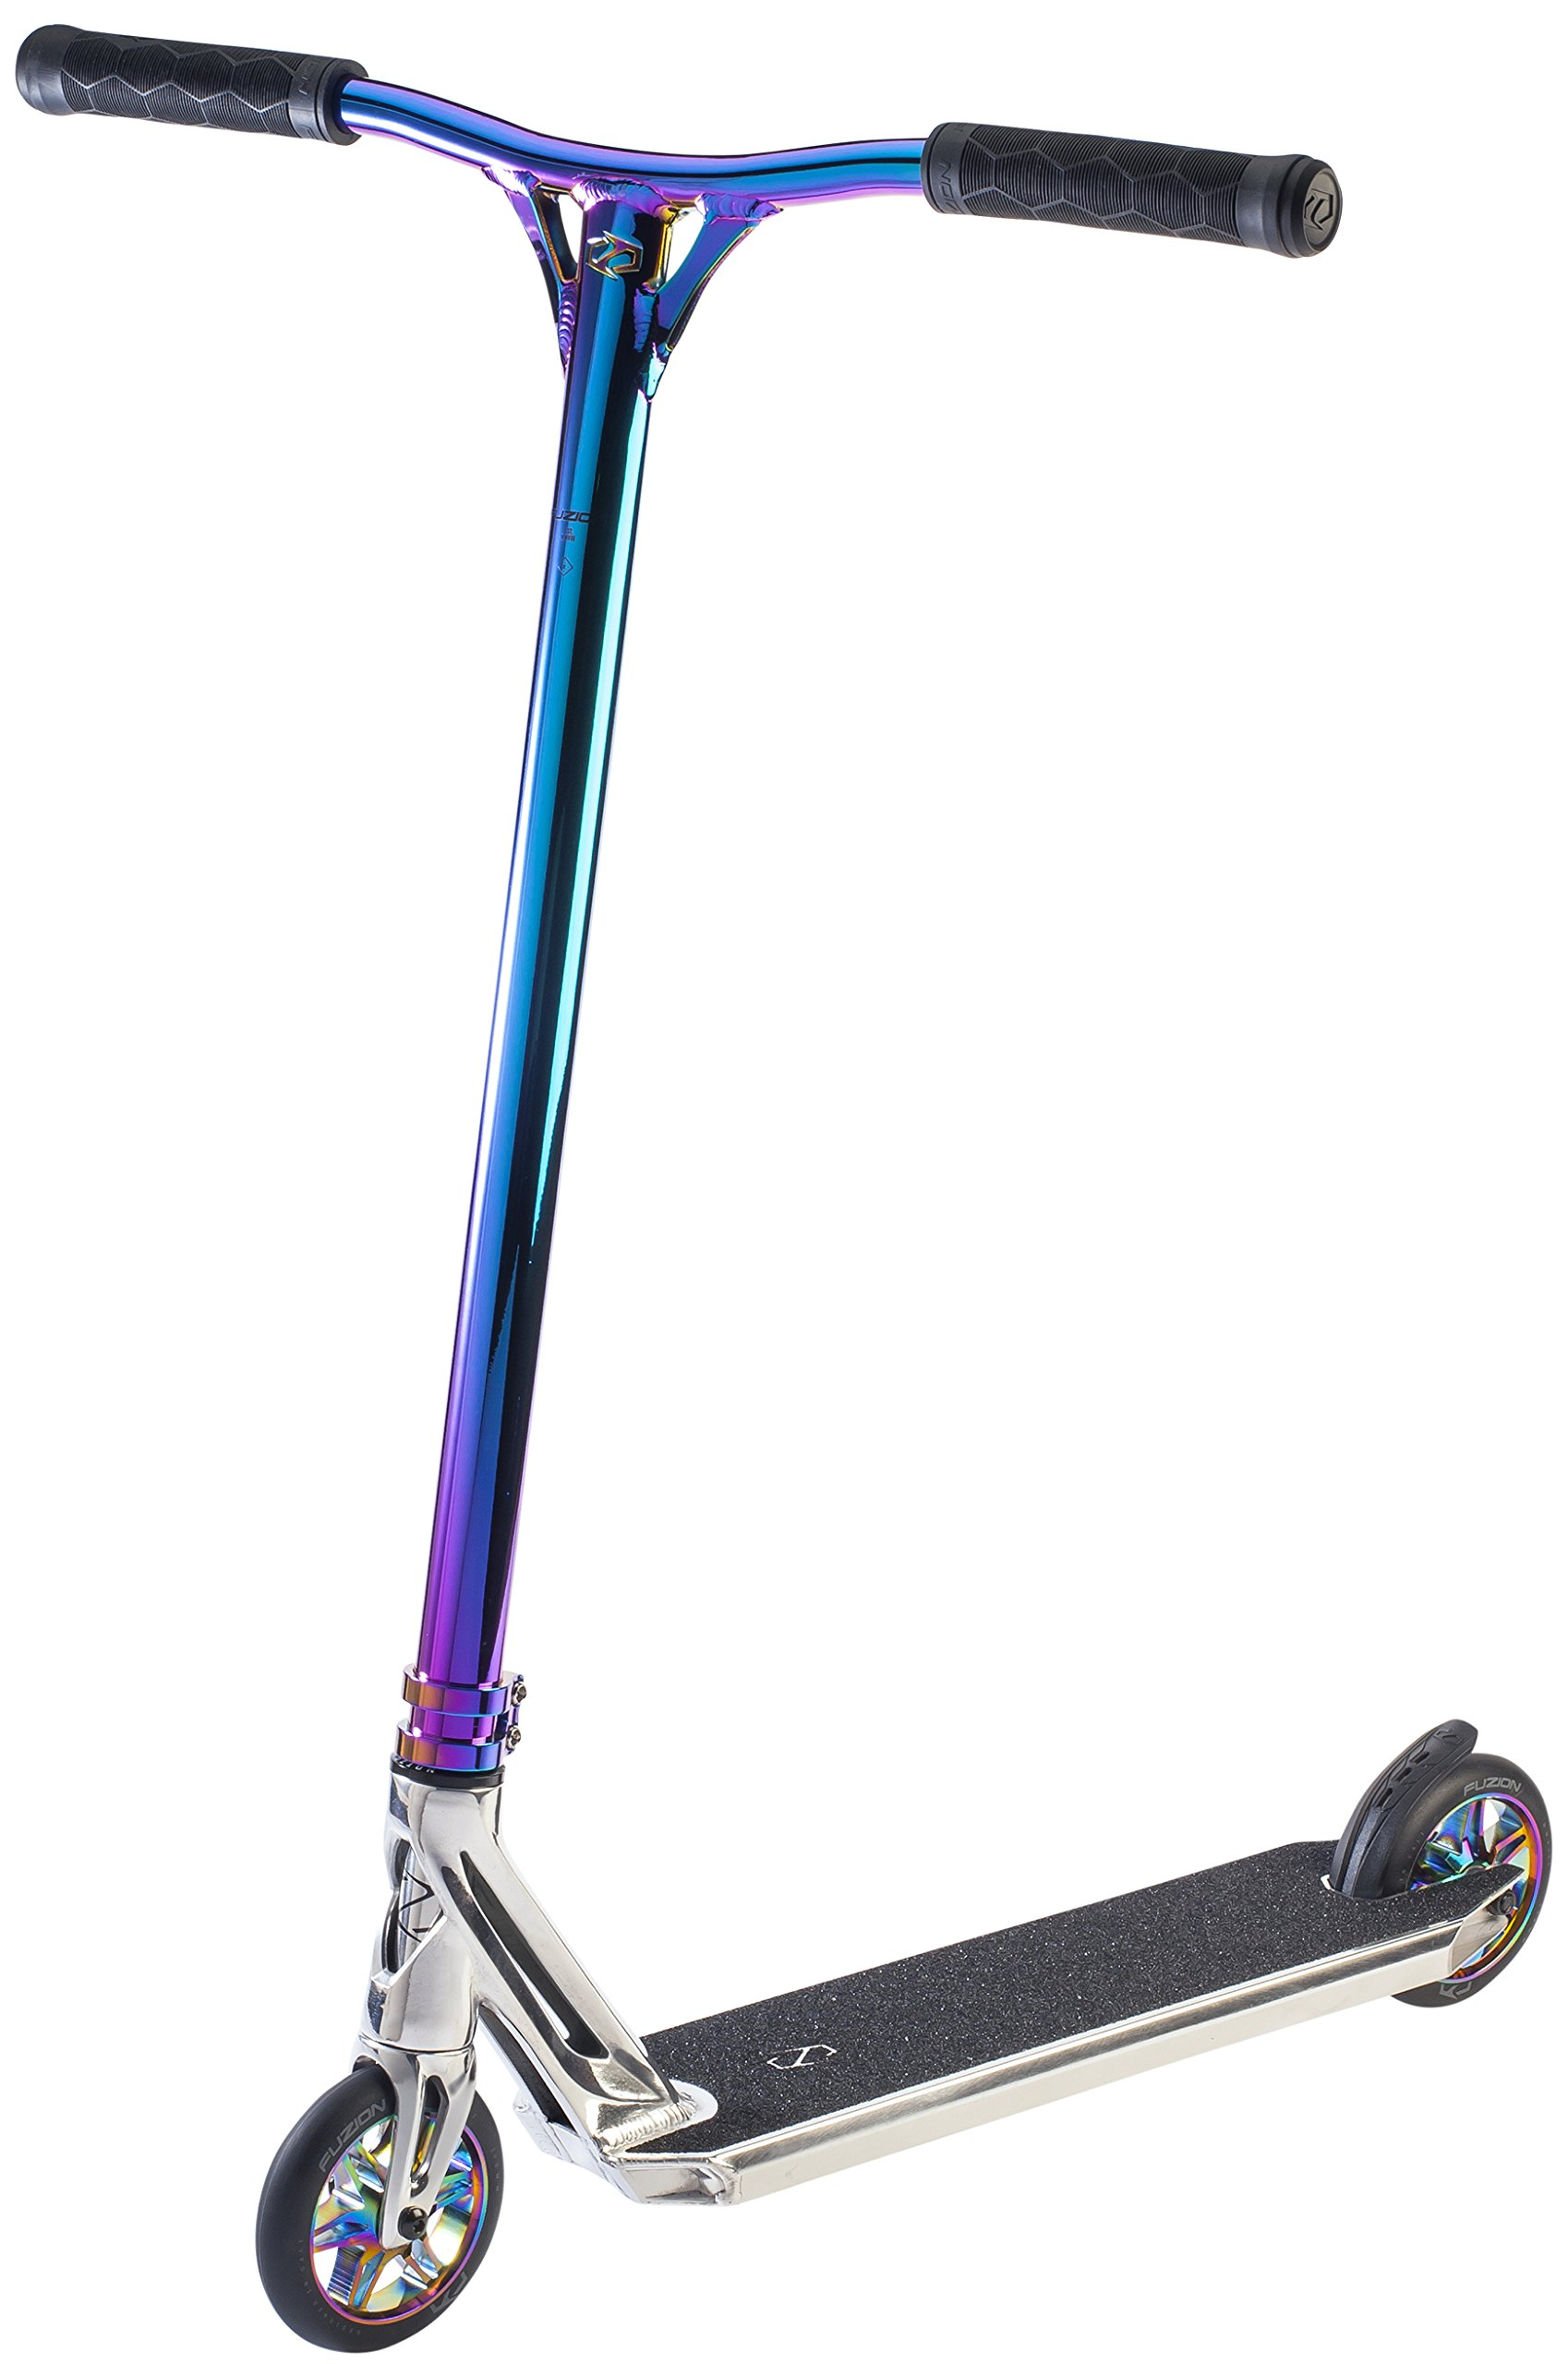 Fuzion Z375 Pro Scooter Complete (2018 Polished) by Fuzion